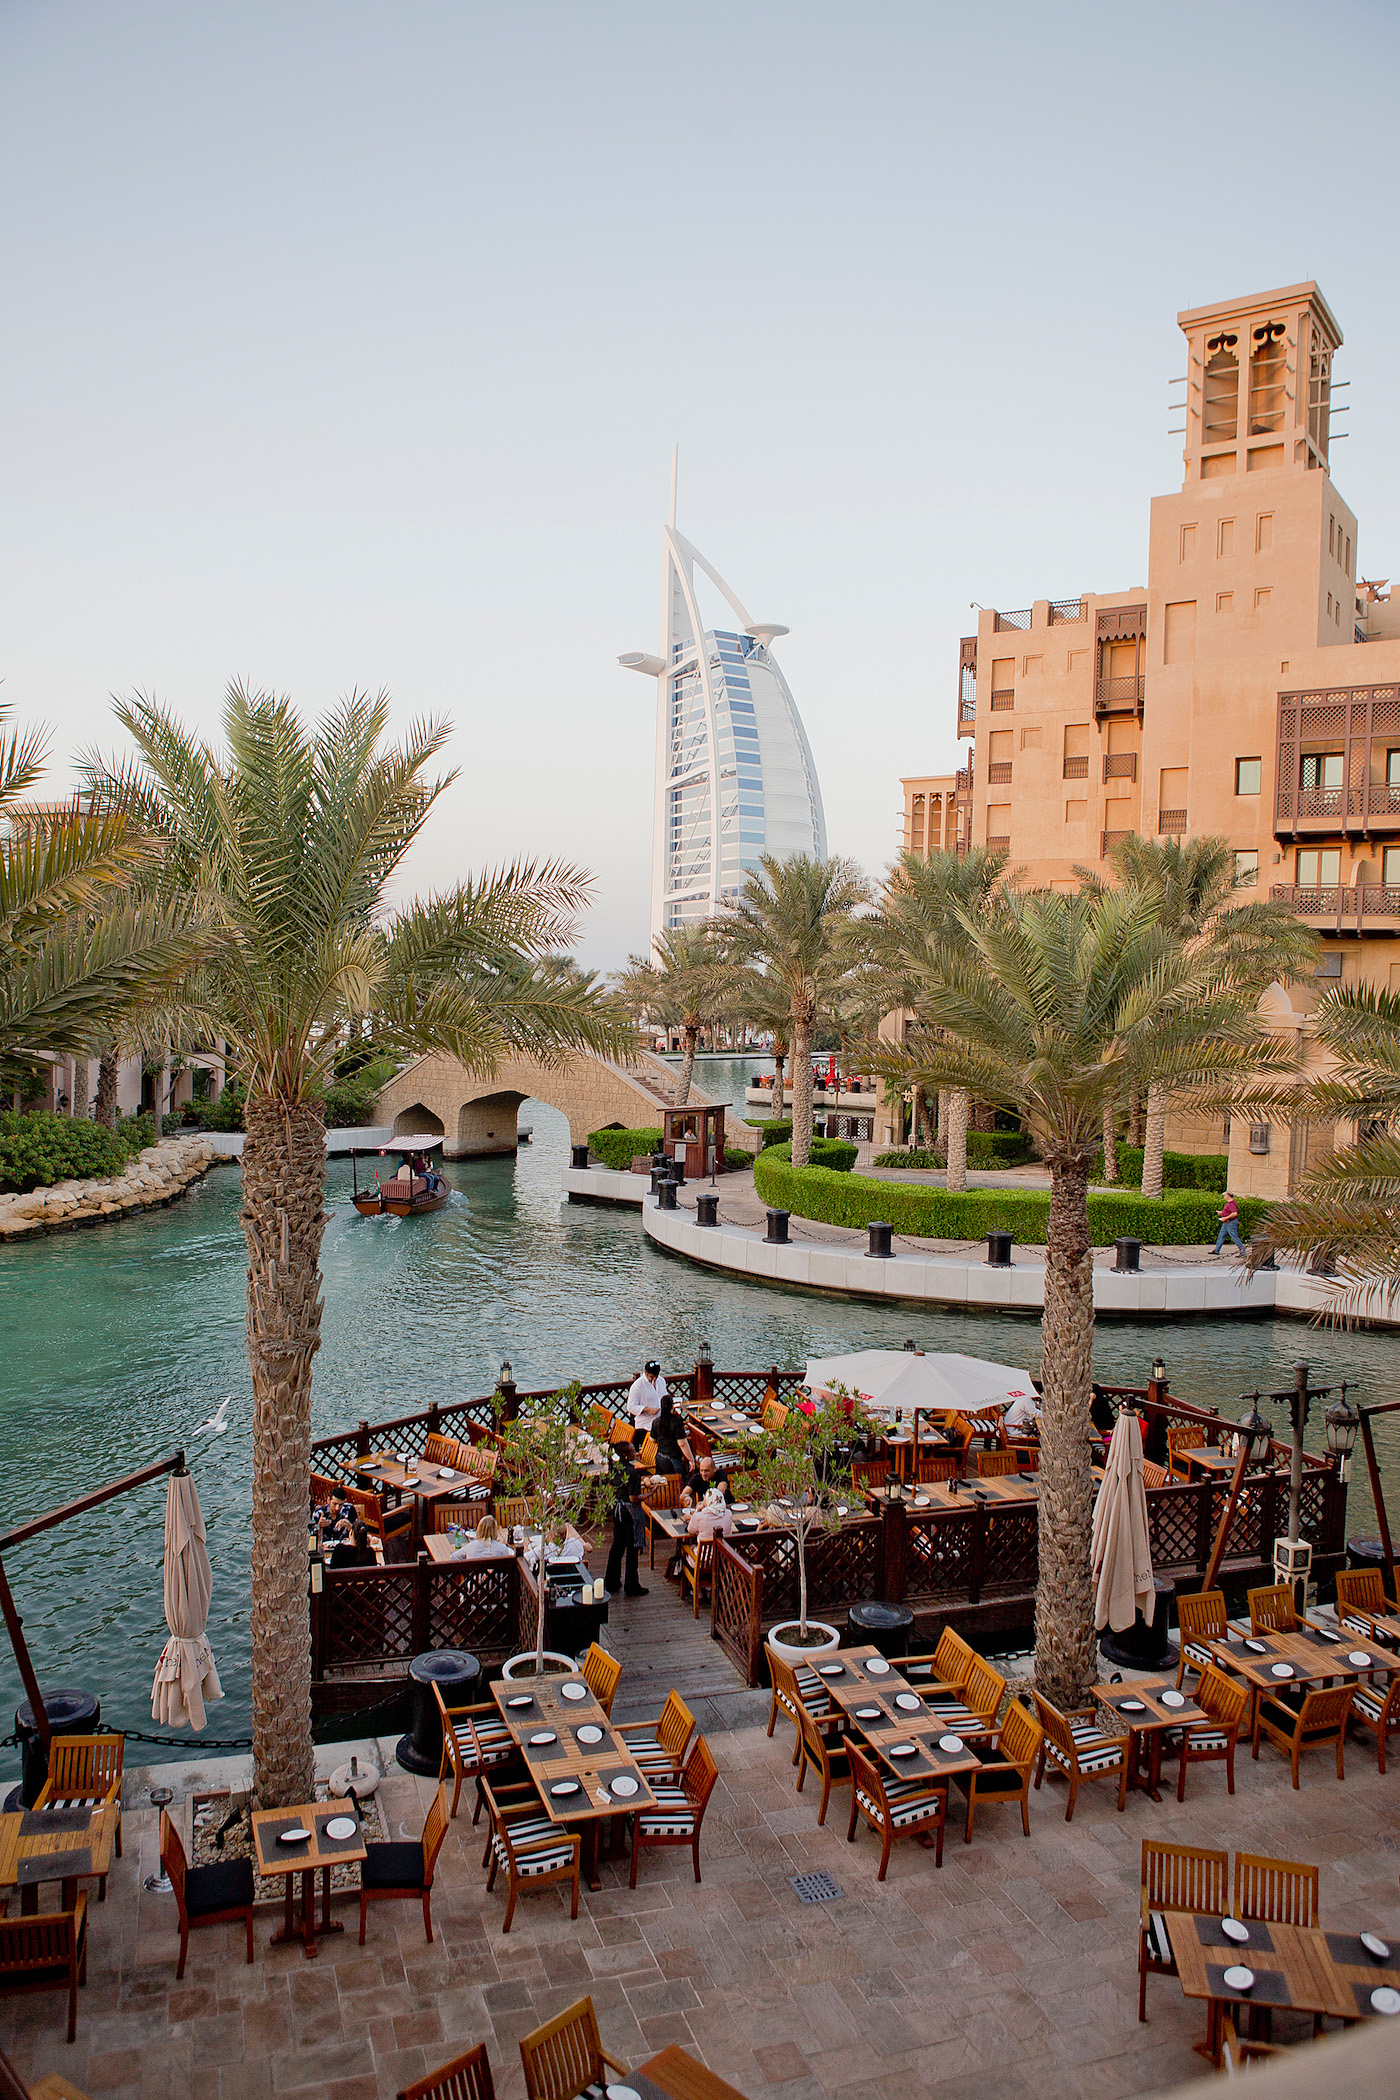 Medinat Jumeirah _ visit dubai _ what to see in dubai _ dubai sightseeing